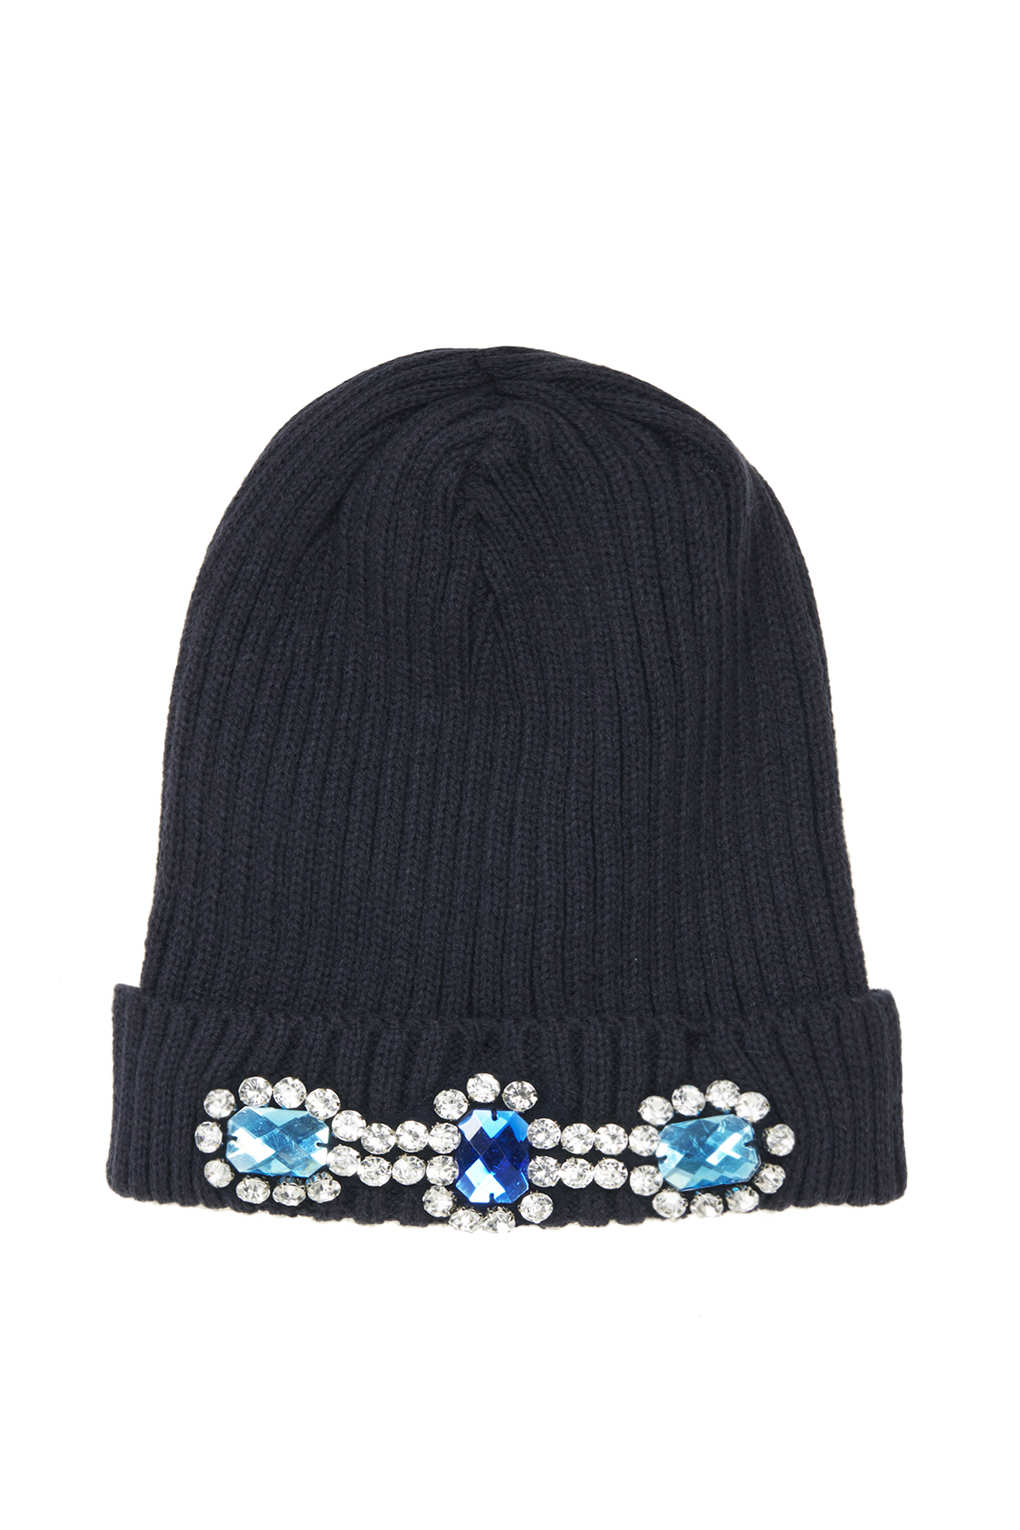 783946a7a22 Lyst - Topshop Heavy Embellished Beanie in Blue